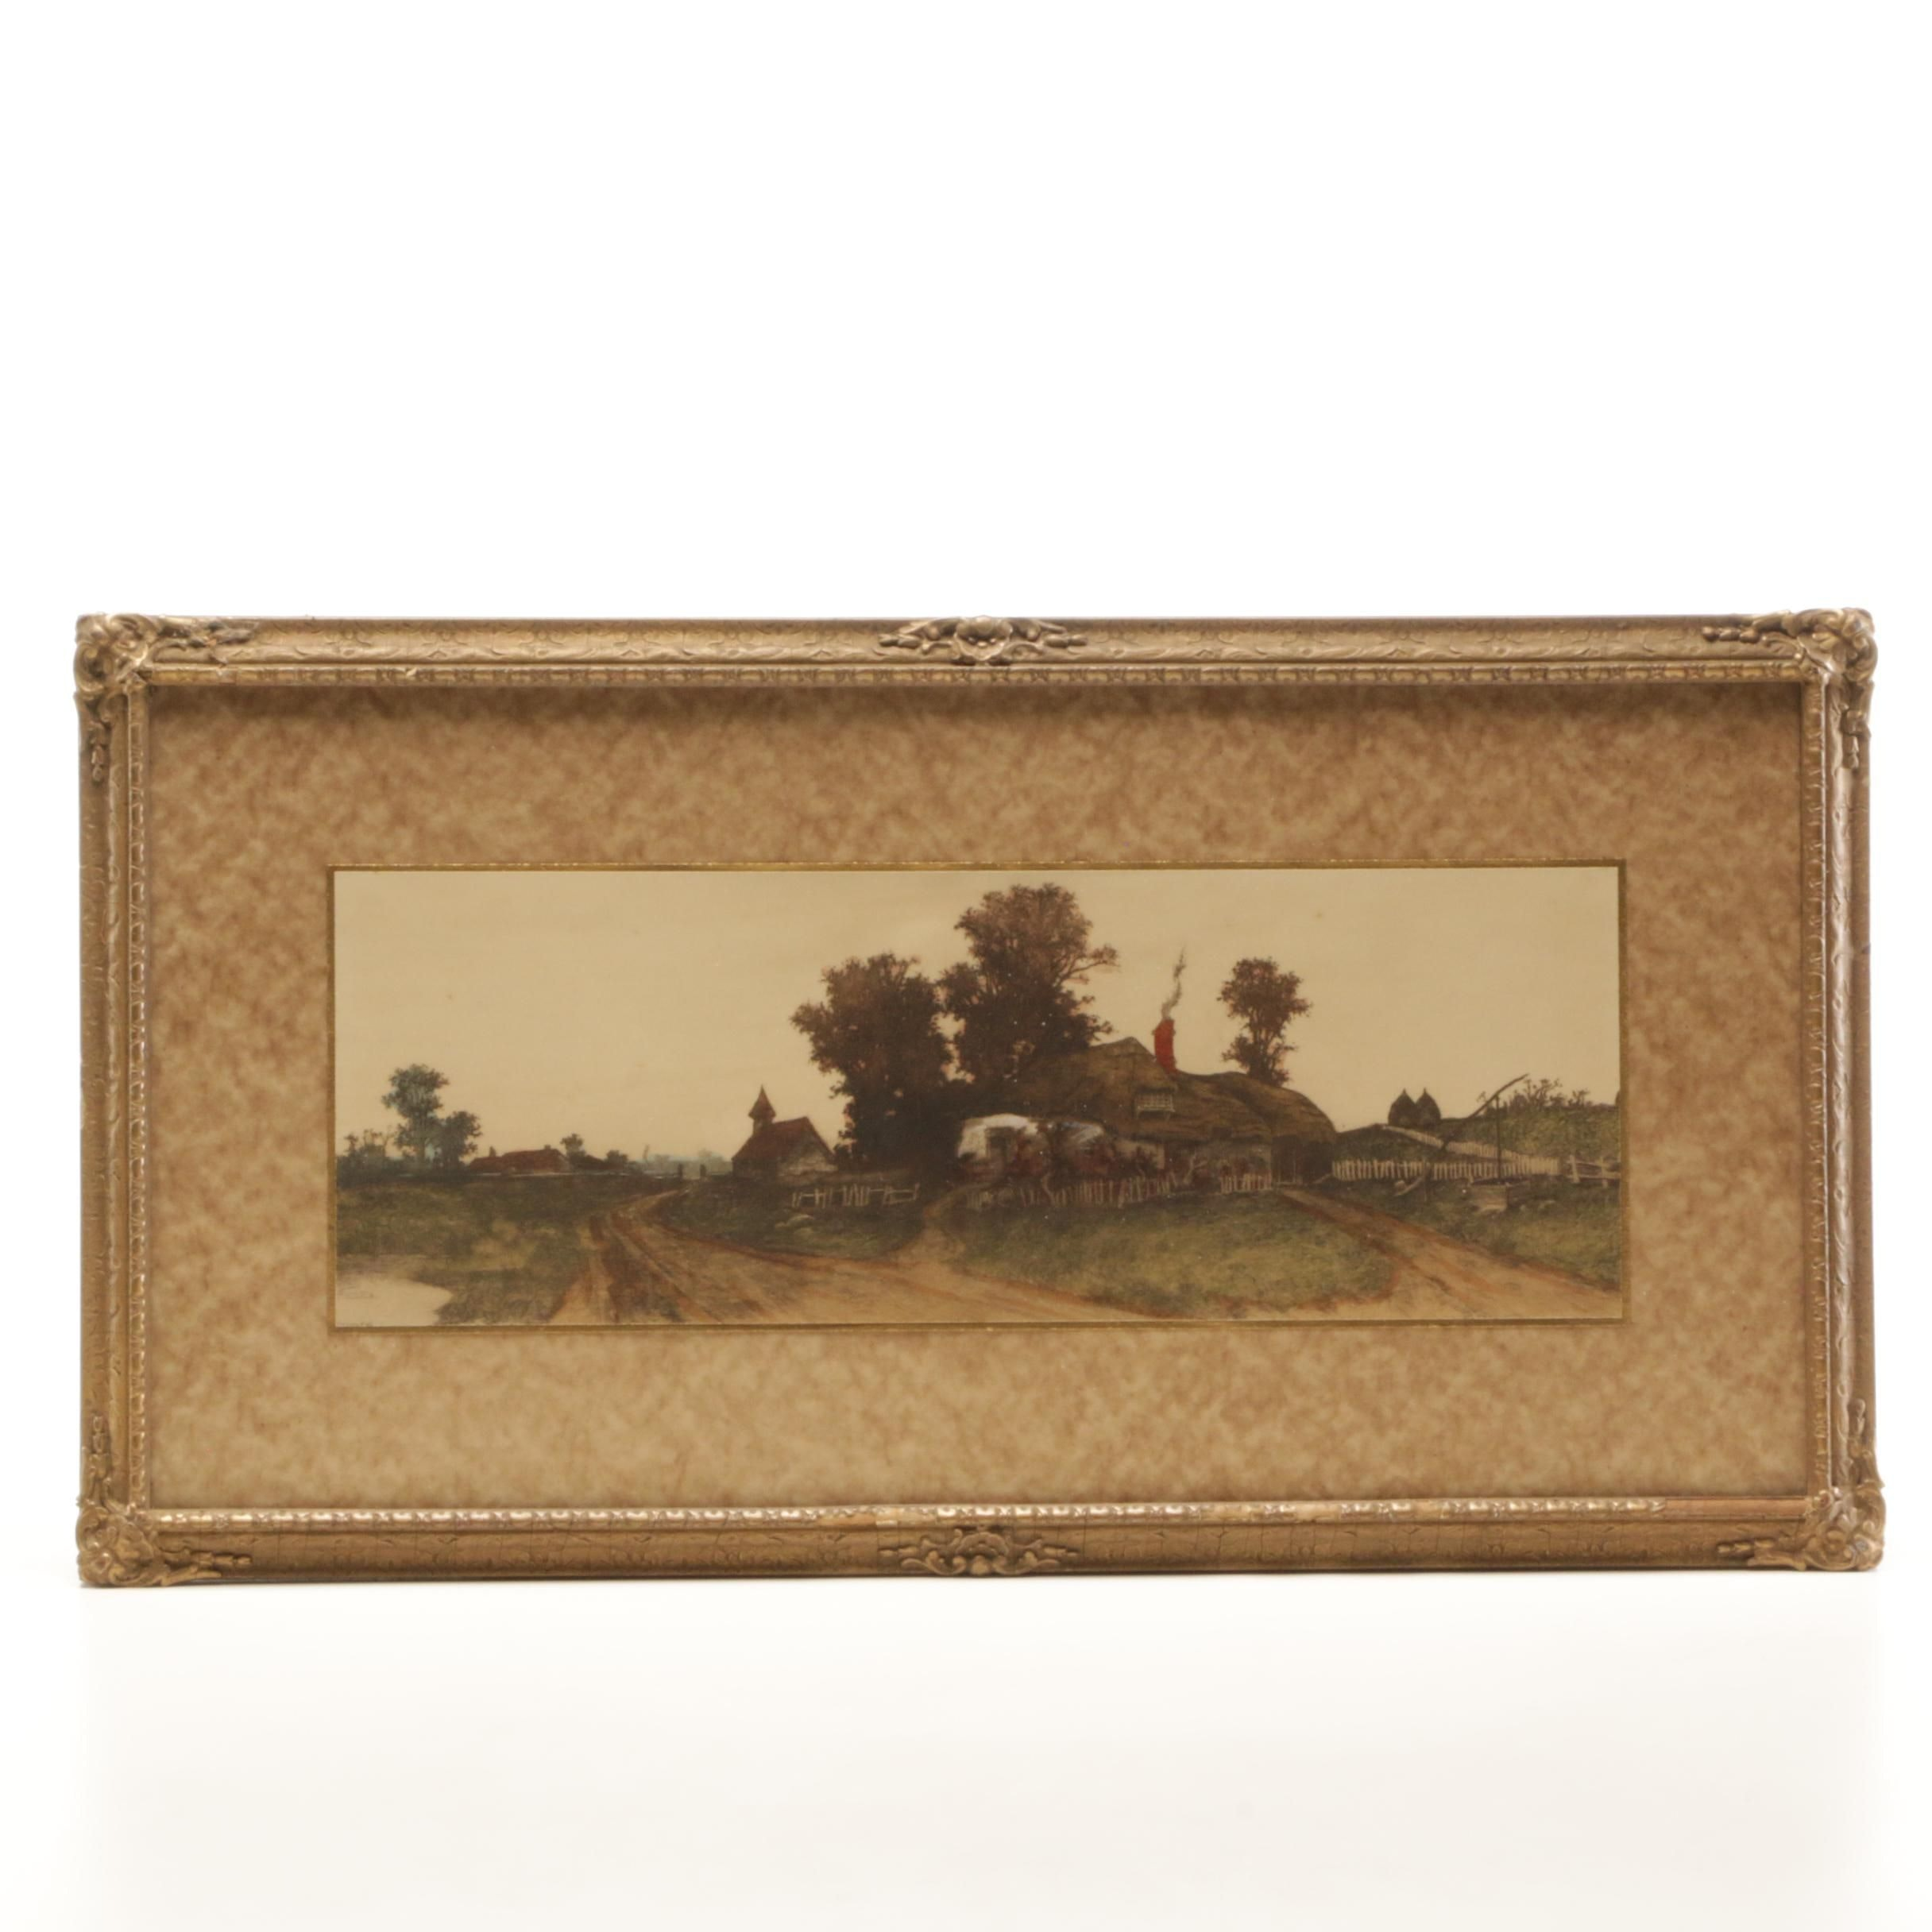 Hand-colored Etching of Pastoral Scene